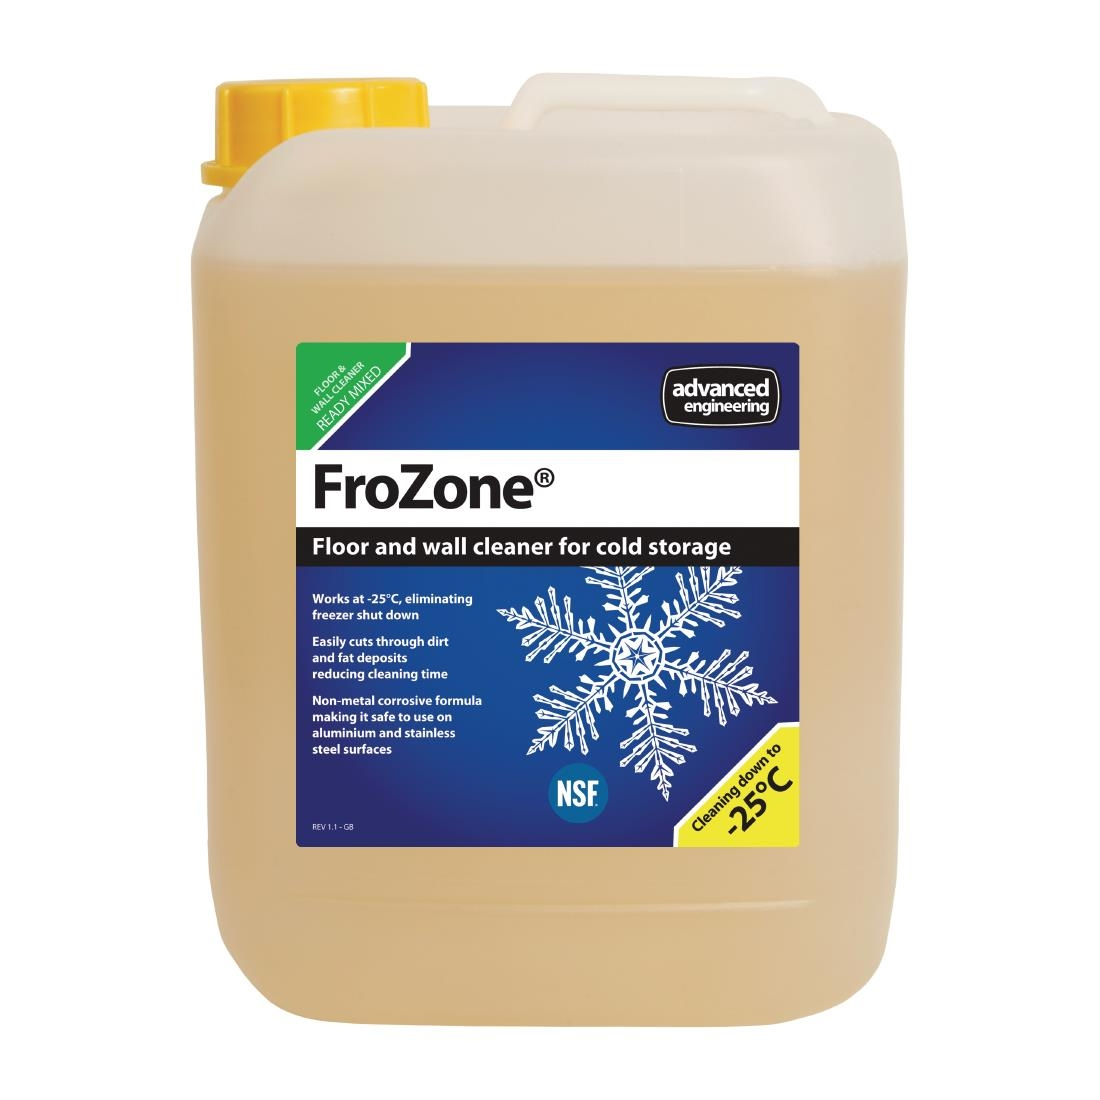 Image of FroZone Low Temperature Refrigerator and Freezer Cleaner Ready To Use 5Ltr (4 Pack) Pack of 4